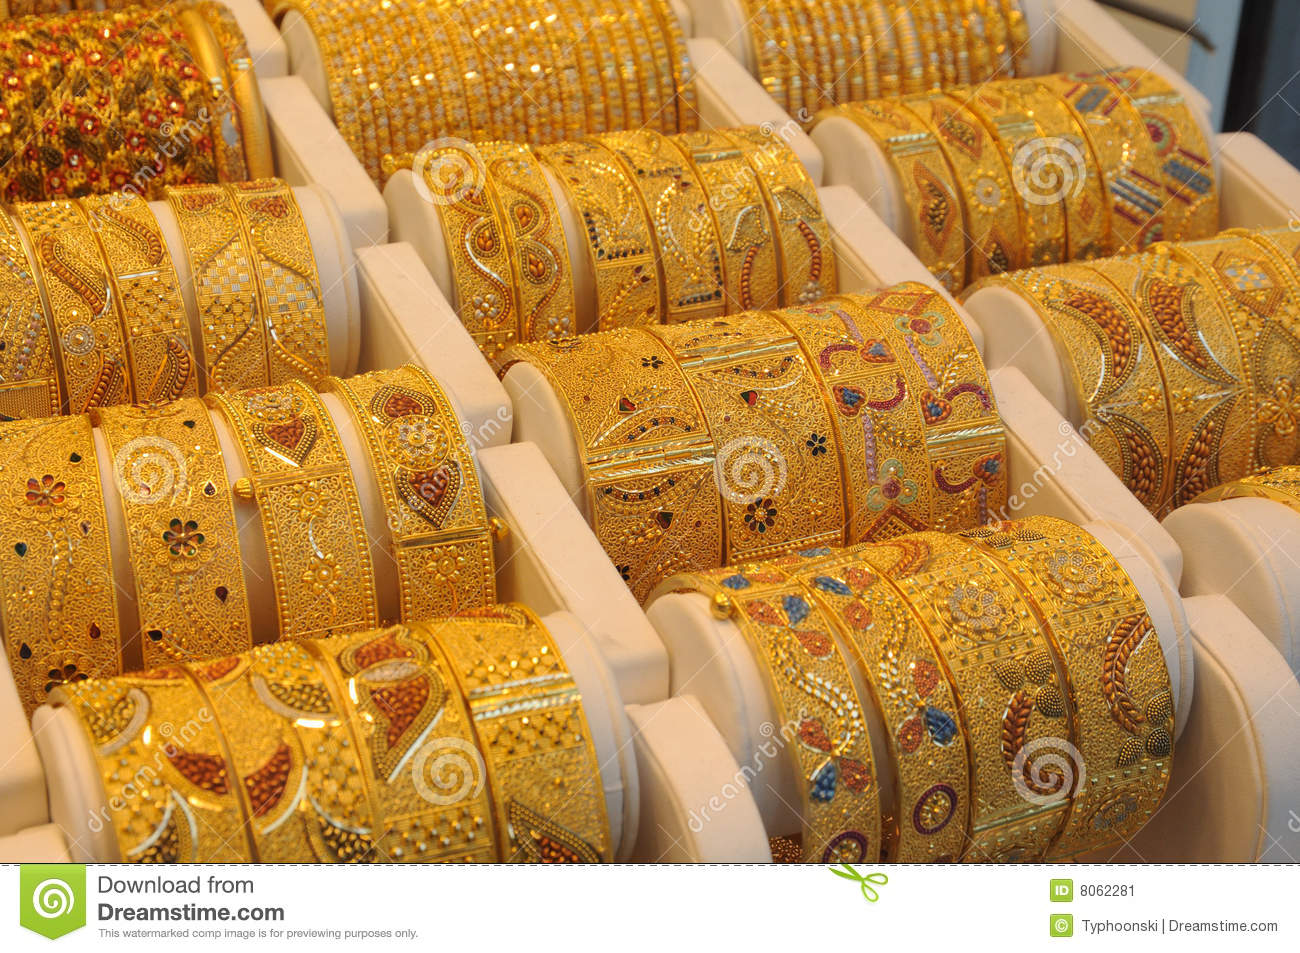 high photo united detail res deira arab photography dubai souk bracelets picture emirates gold stock